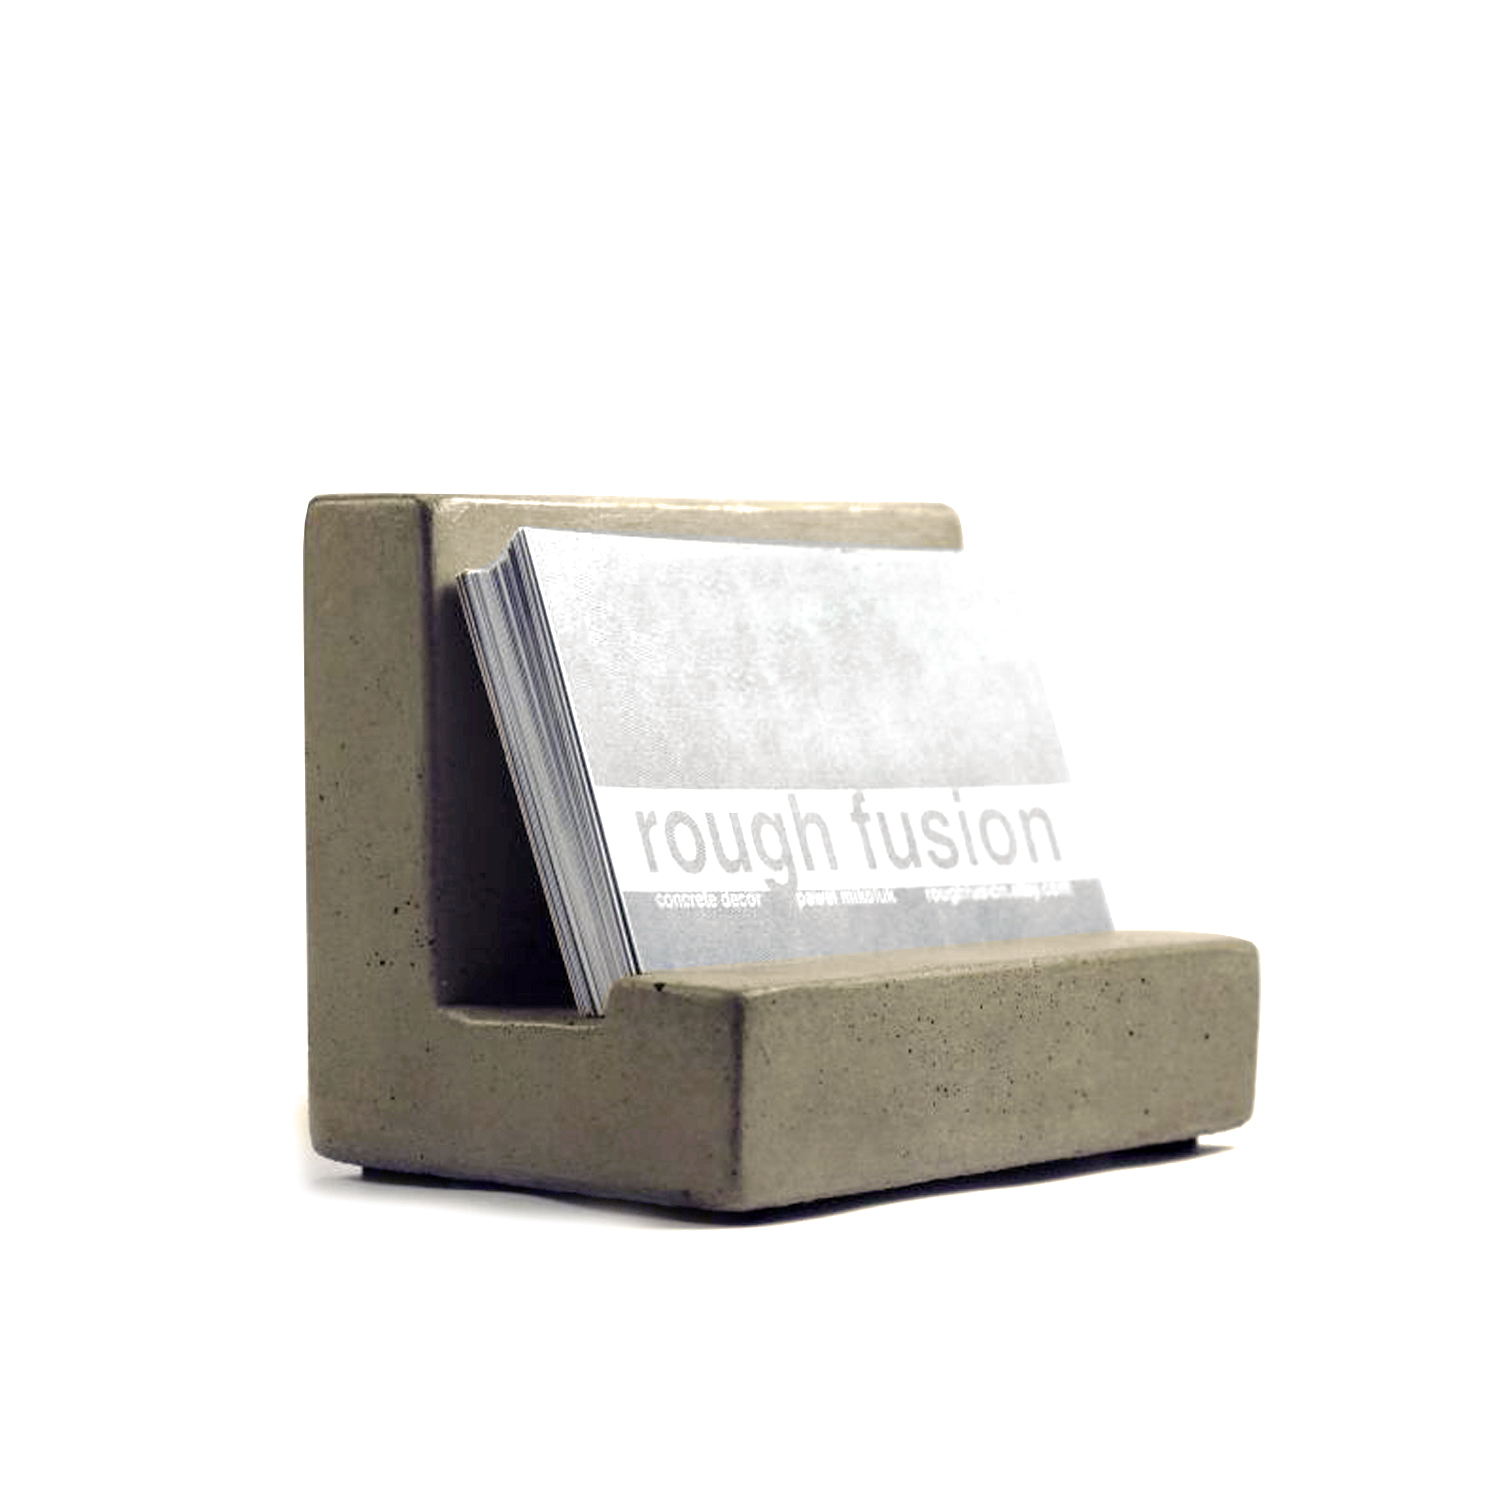 Concrete Business Card Holder (natural)  Rough Fusion  Touch Of Modern